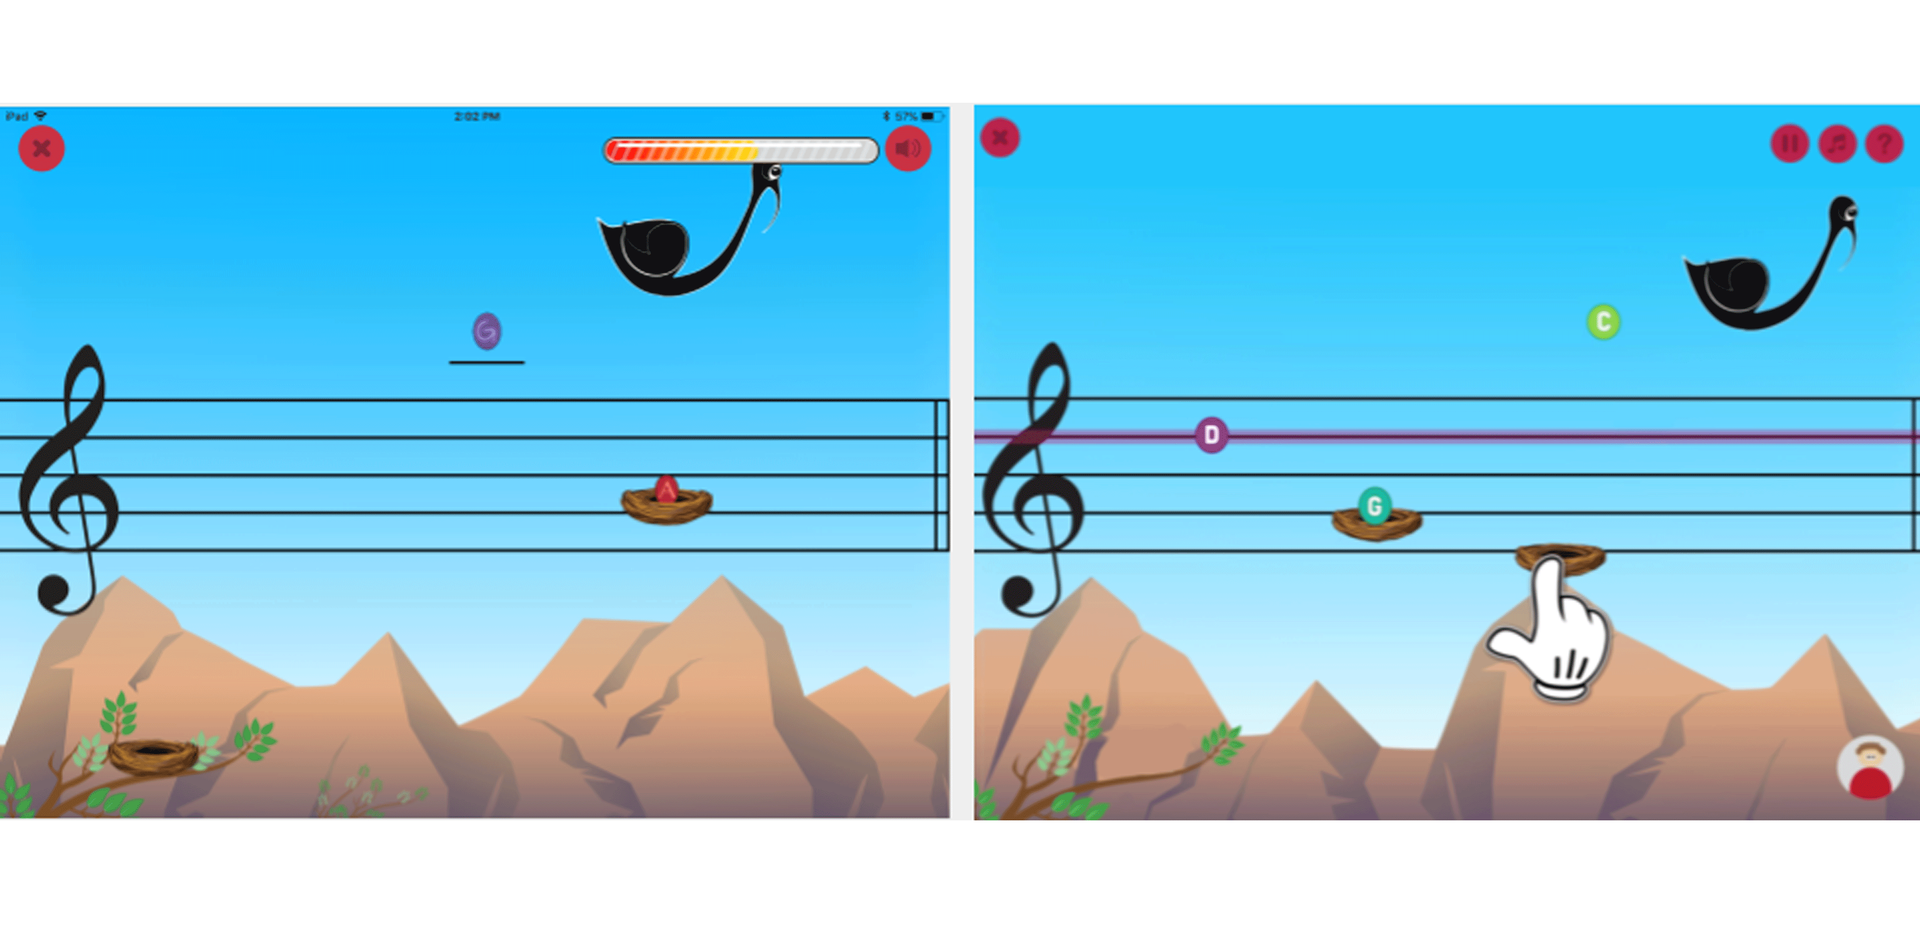 Existing on the left vs. proposed on the right: providing access to user profile page from the game page, making music notes more legible, informing players of where the missed note is supposed to be placed and playing each note when caught.